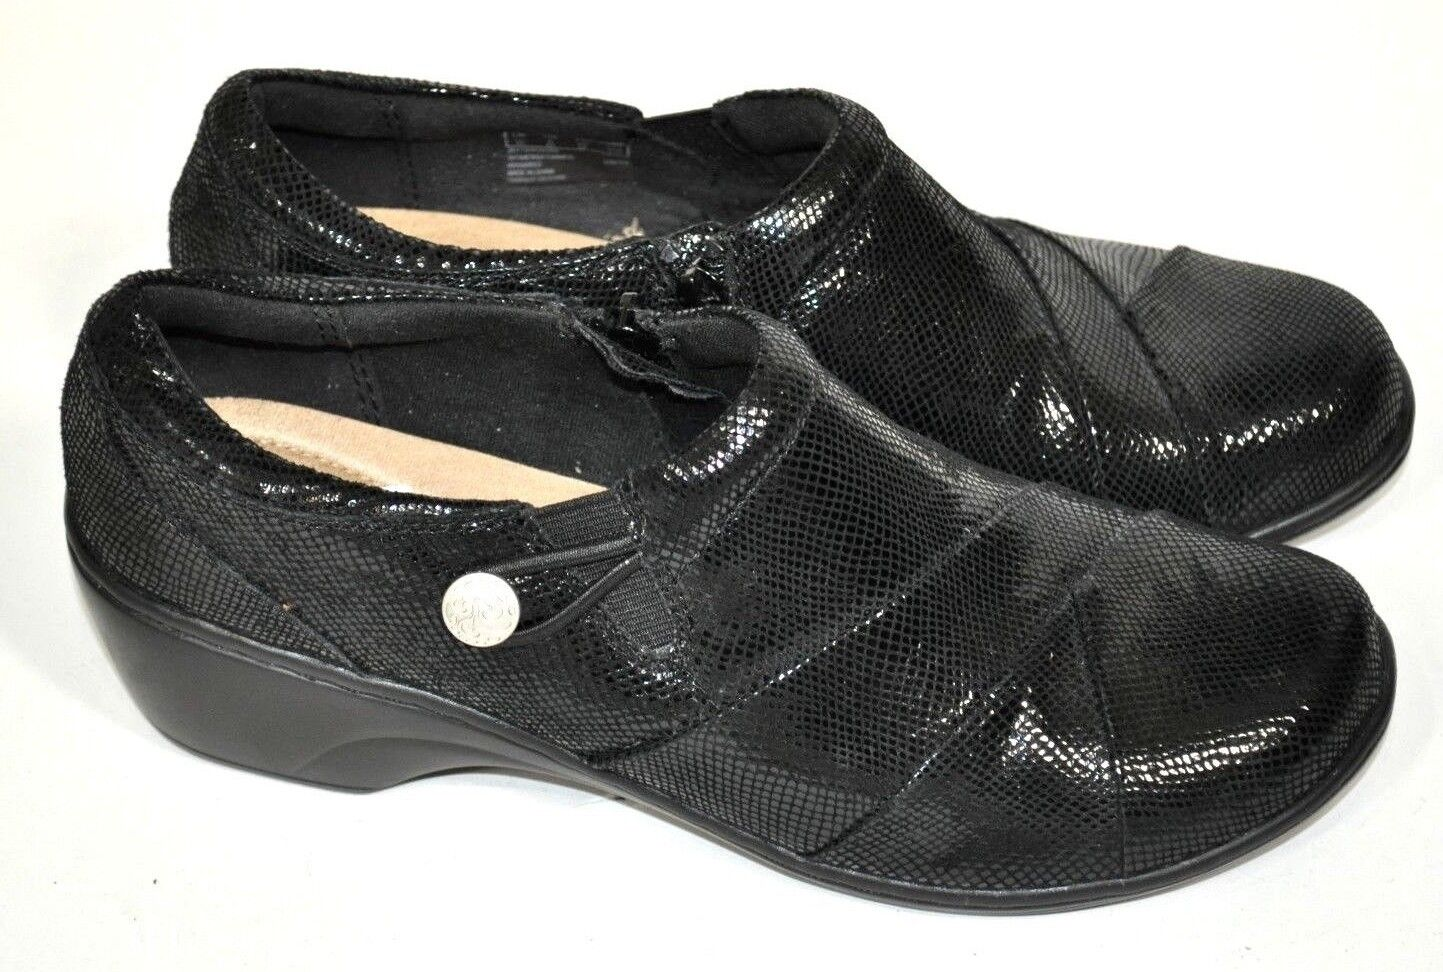 New Clarks Soft Cushion Black Inside Zip shoes Shimmer Textured low 2  heel 9 40